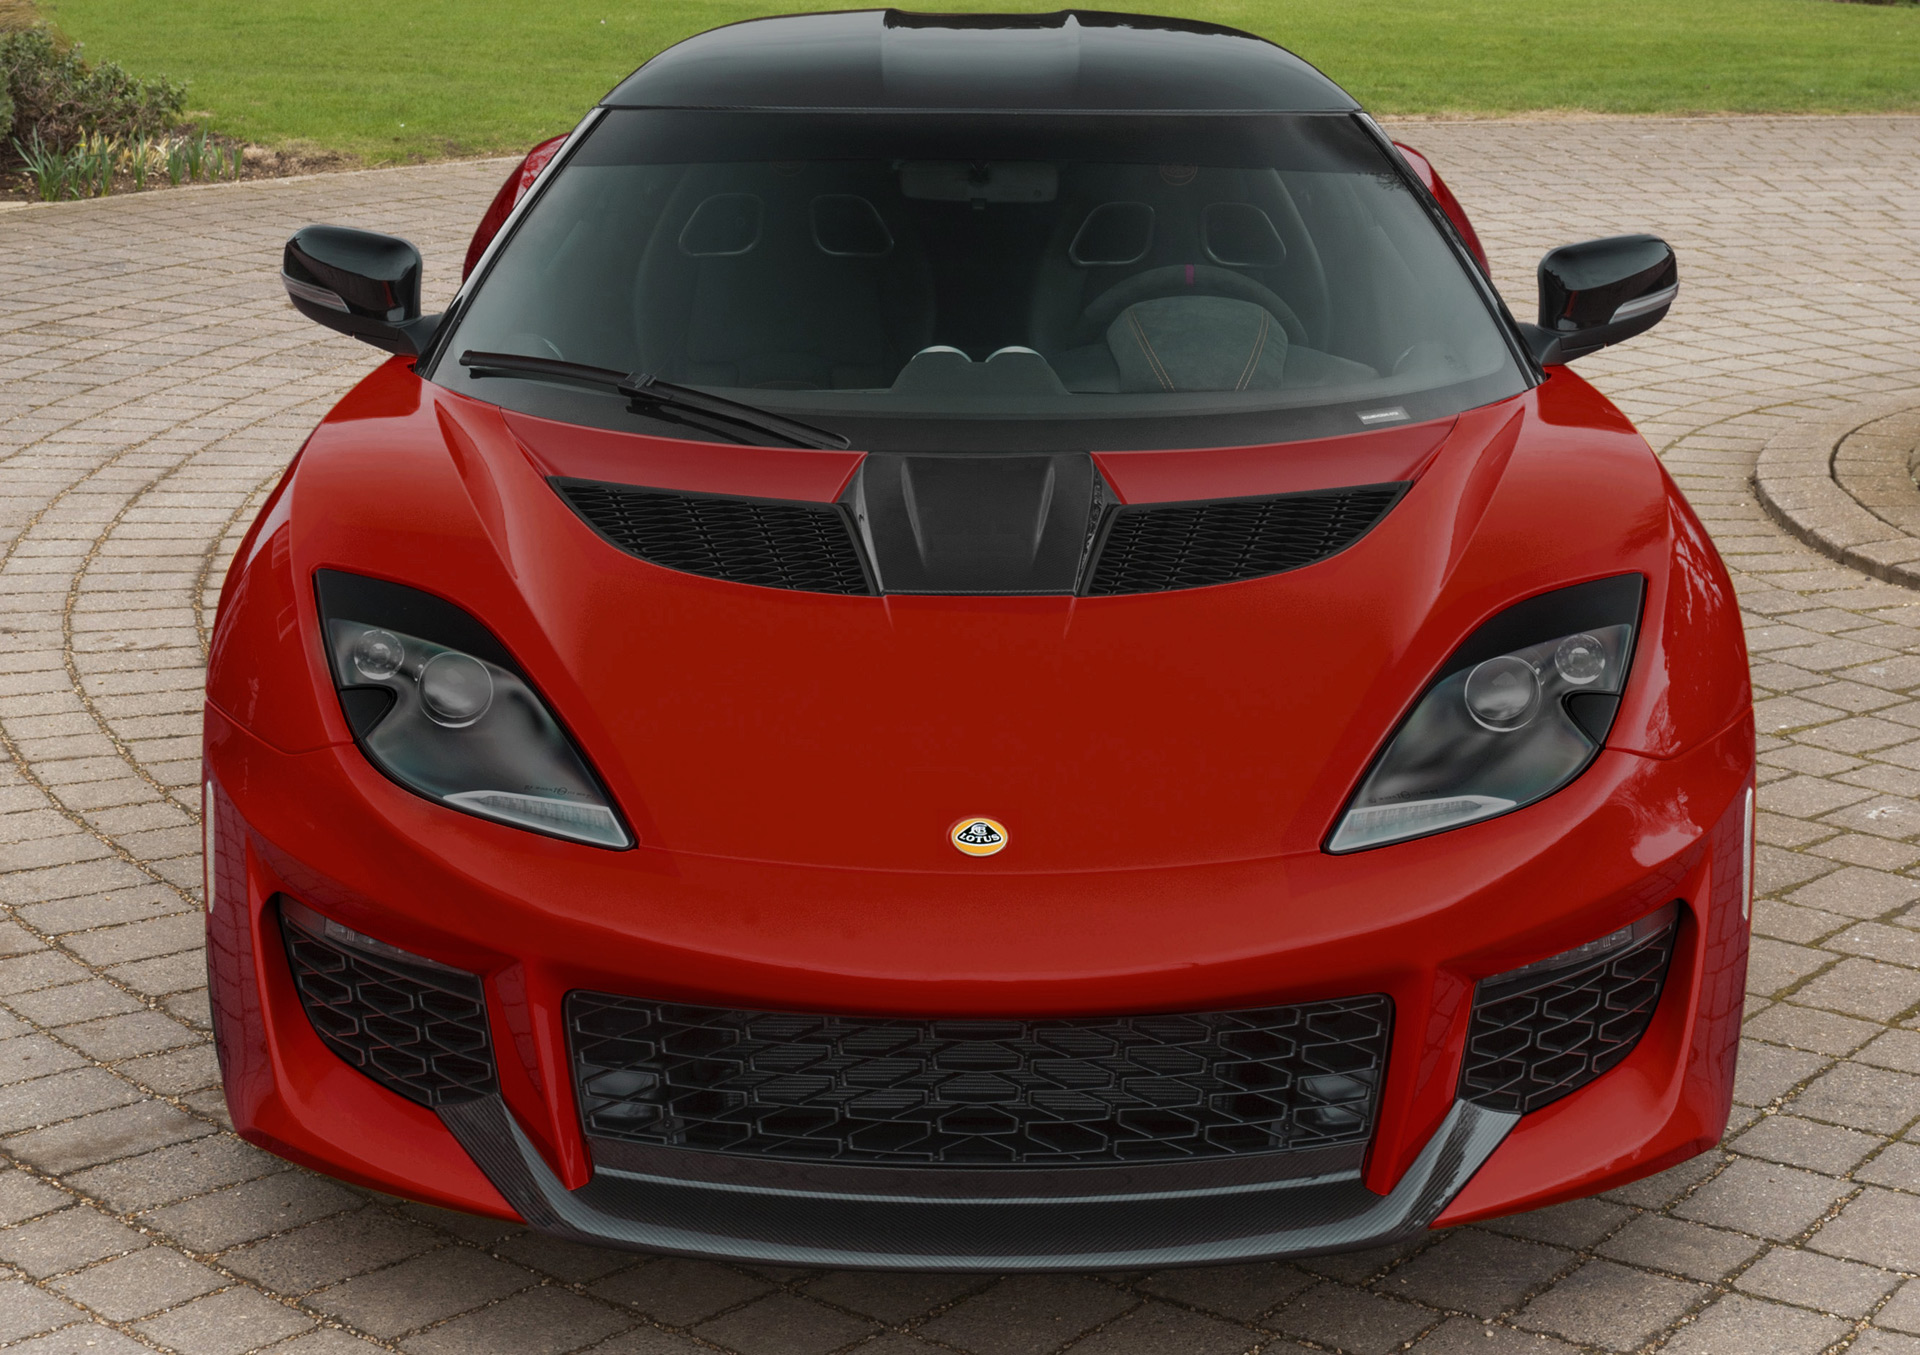 lotus evora 400 lightweight options drop curb weight to 3 060 pounds. Black Bedroom Furniture Sets. Home Design Ideas